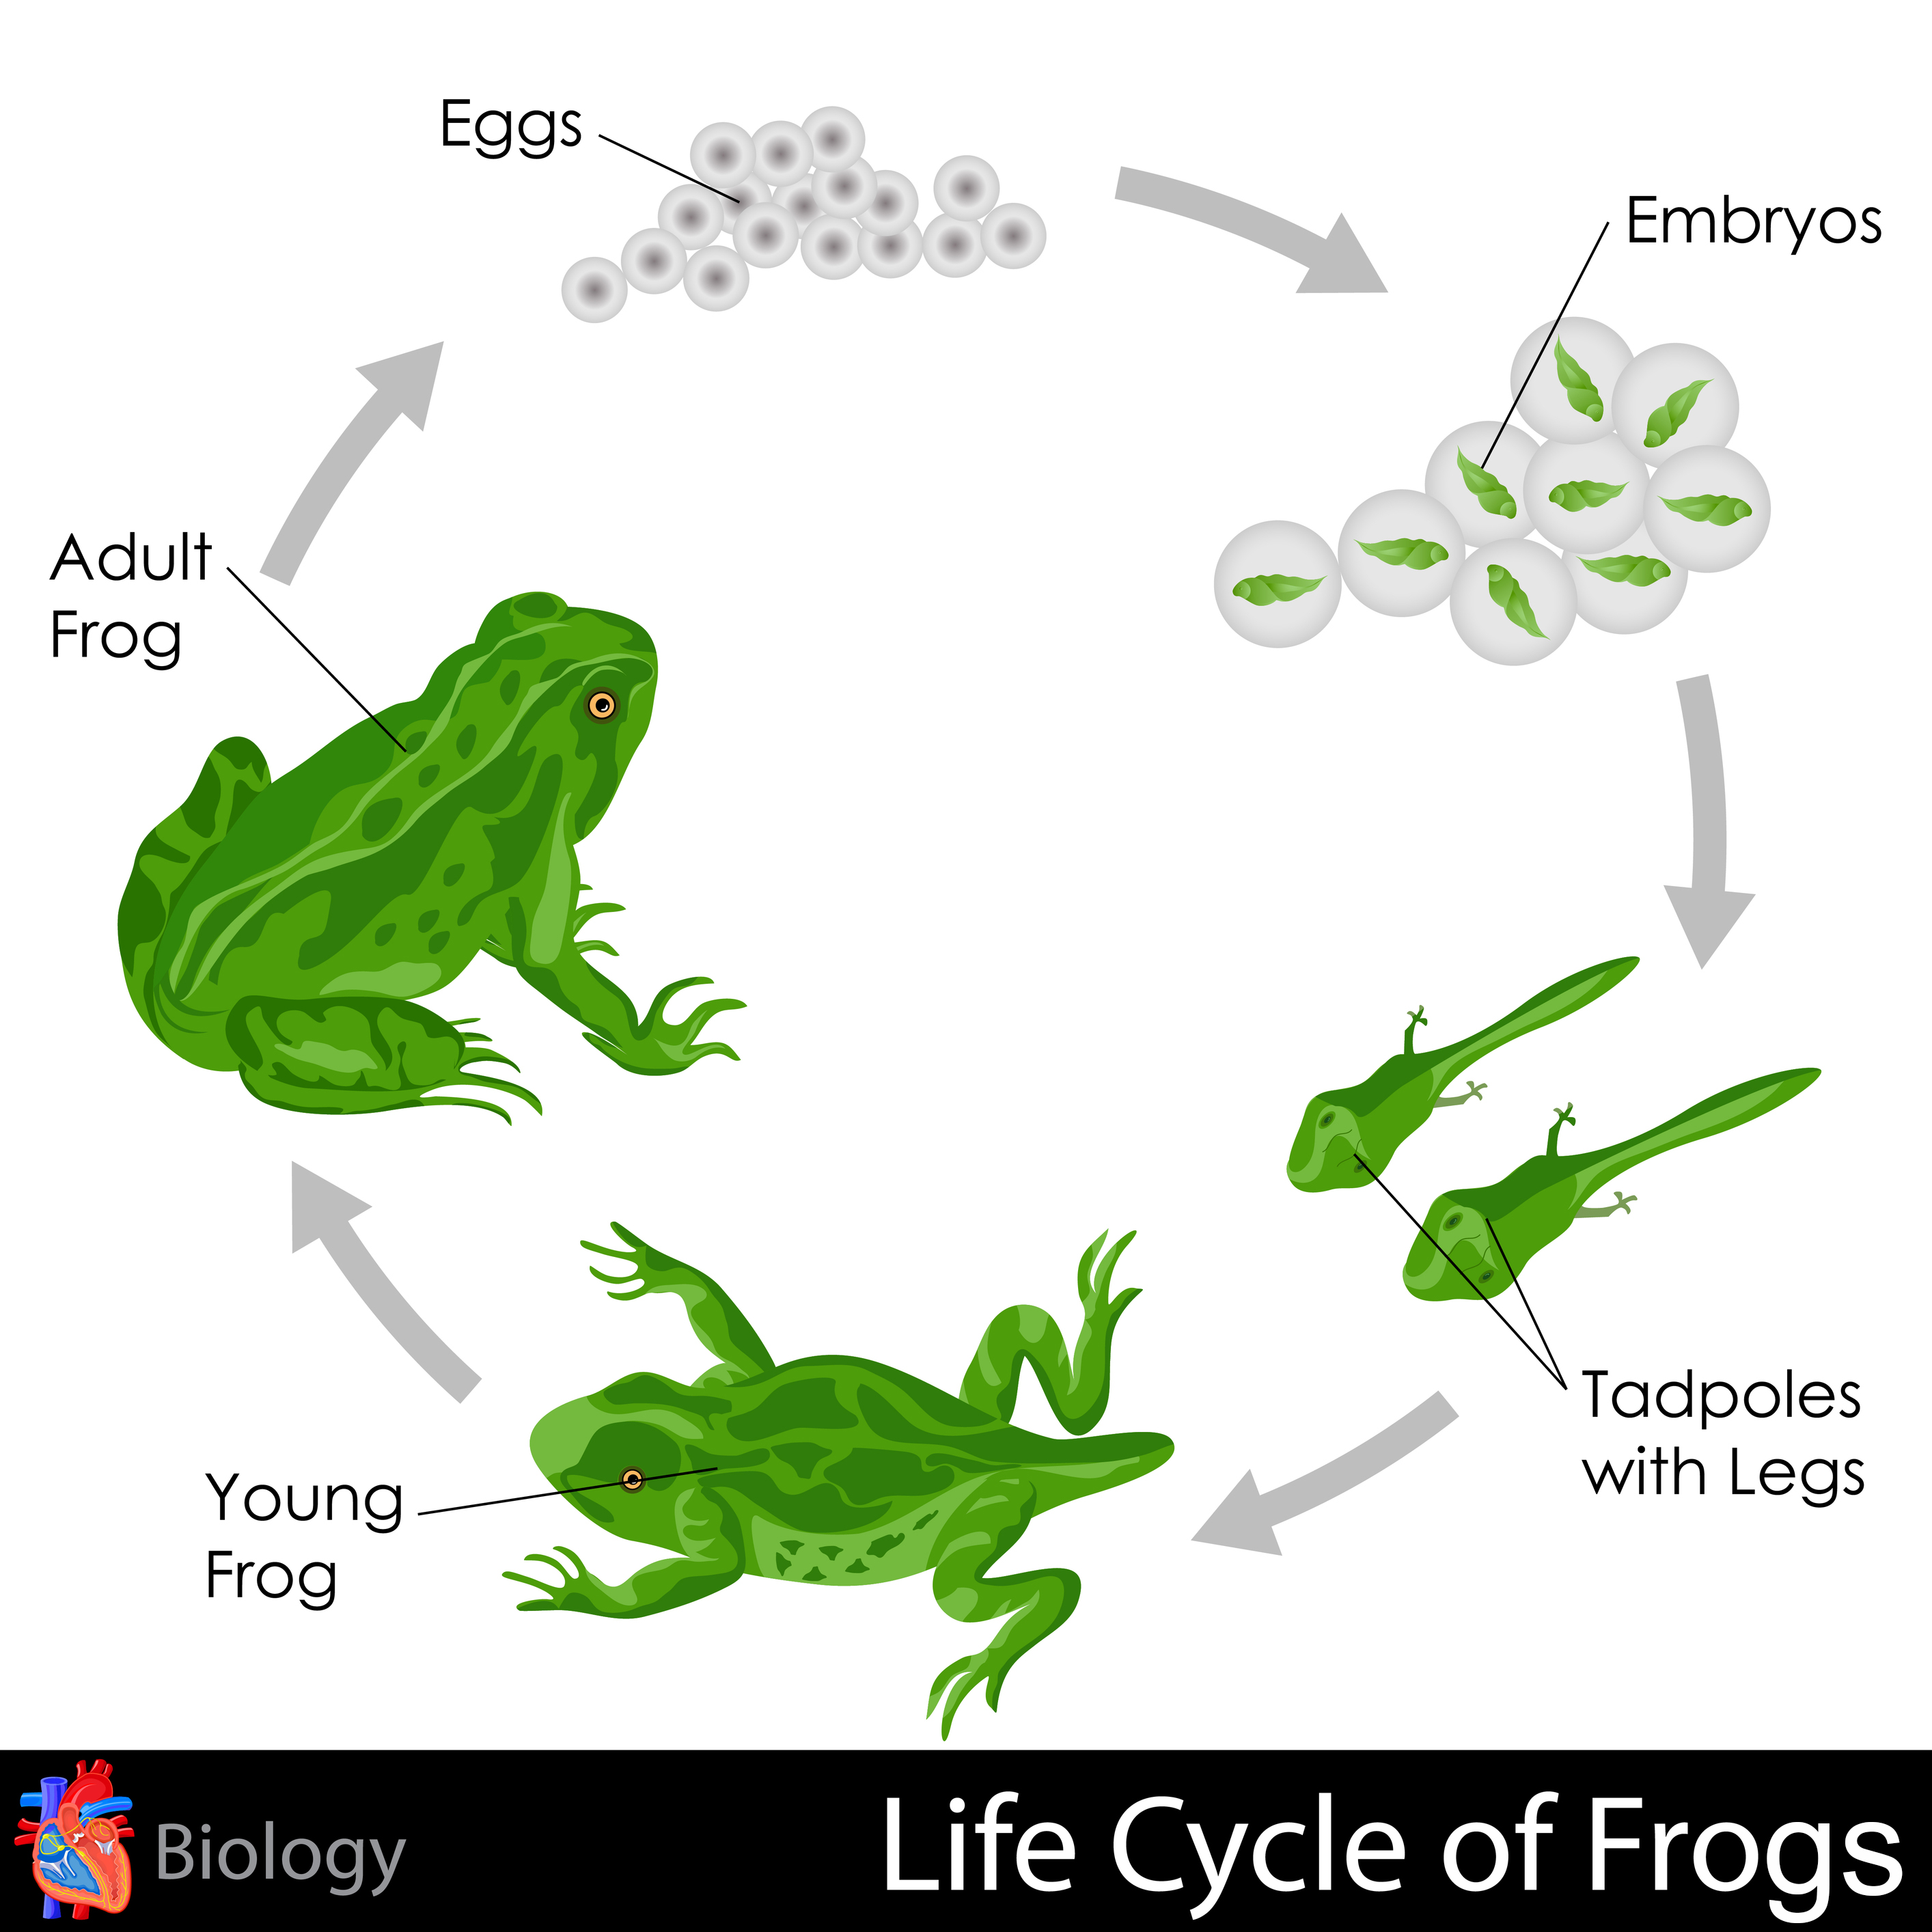 Worksheet Life Cycle Of A Frog Worksheet Grass Fedjp